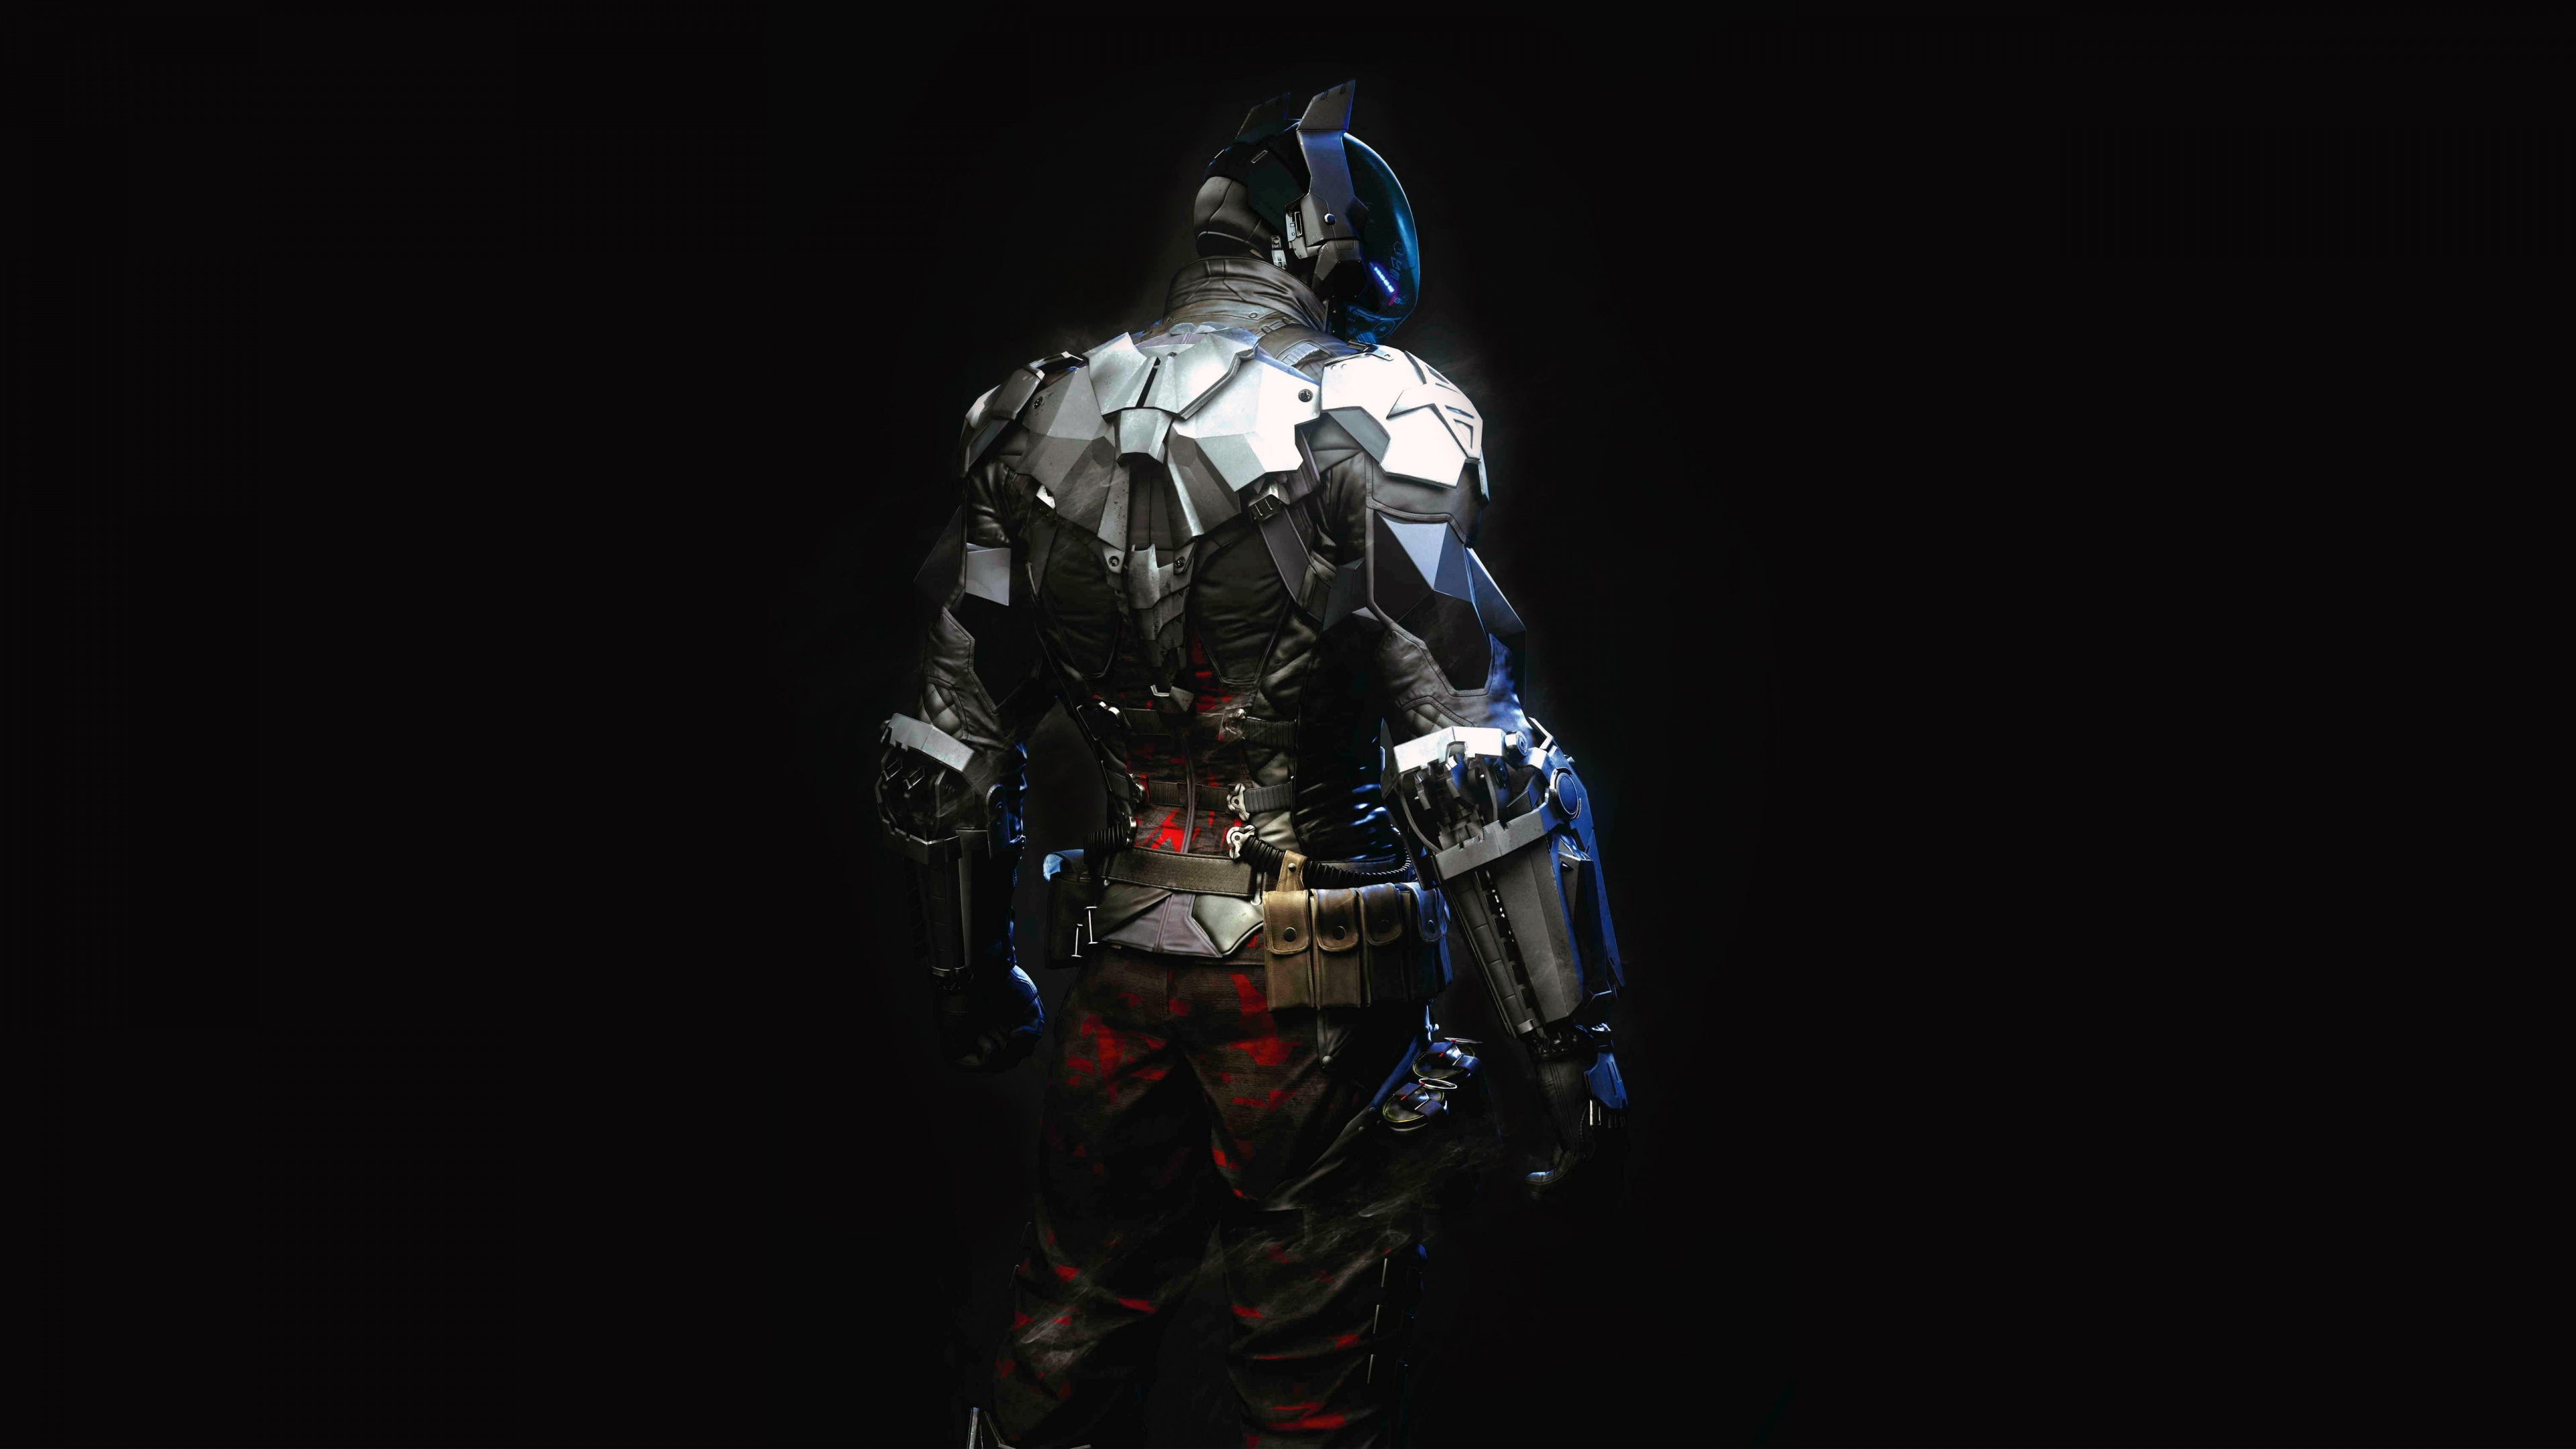 arkham knight 4k 5k wallpapers in jpg format for free download